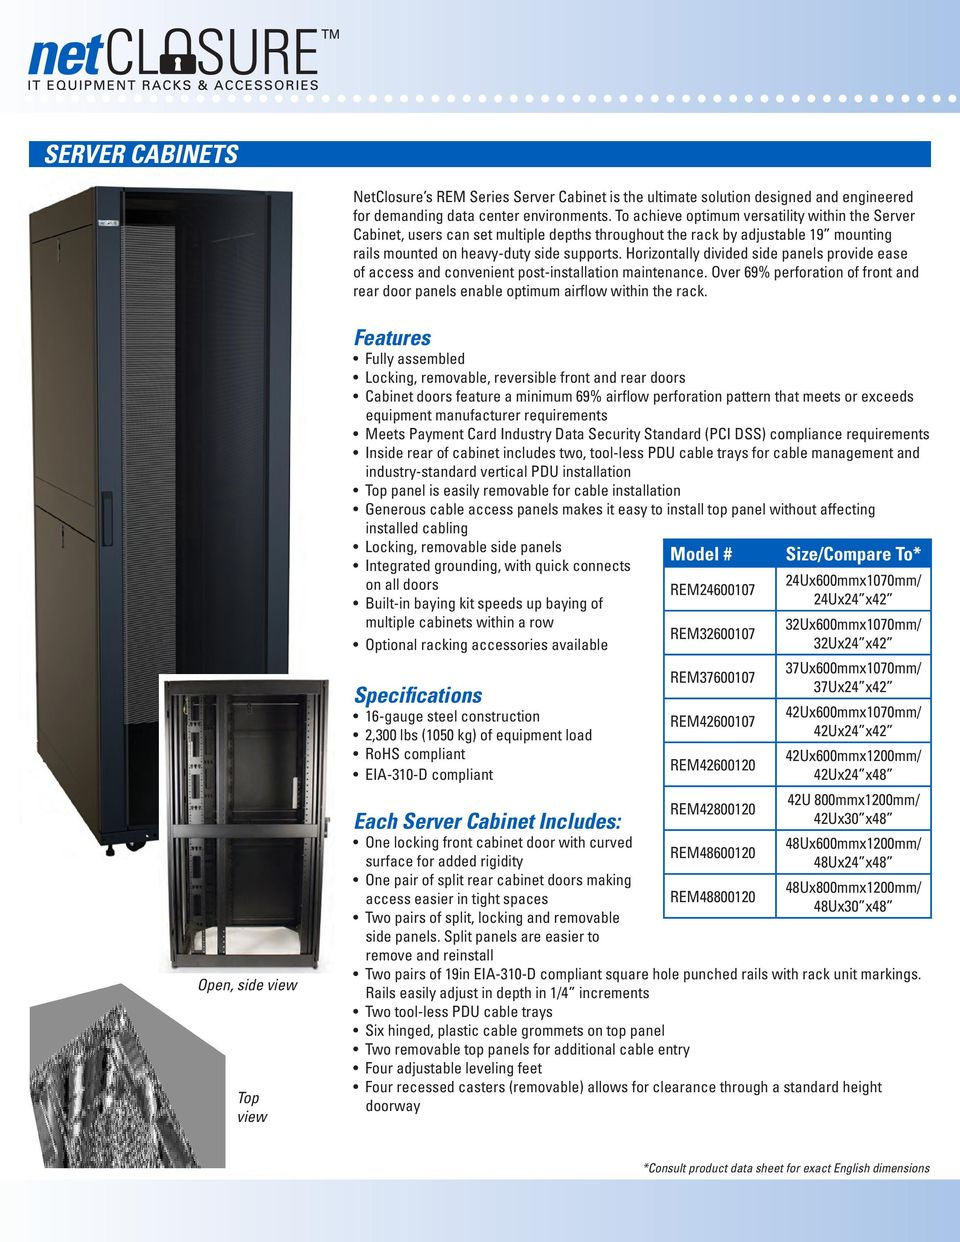 Horizontally divided side panels provide ease of access and convenient post-installation maintenance. Over 69% perforation of front and rear door panels enable optimum airflow within the rack.